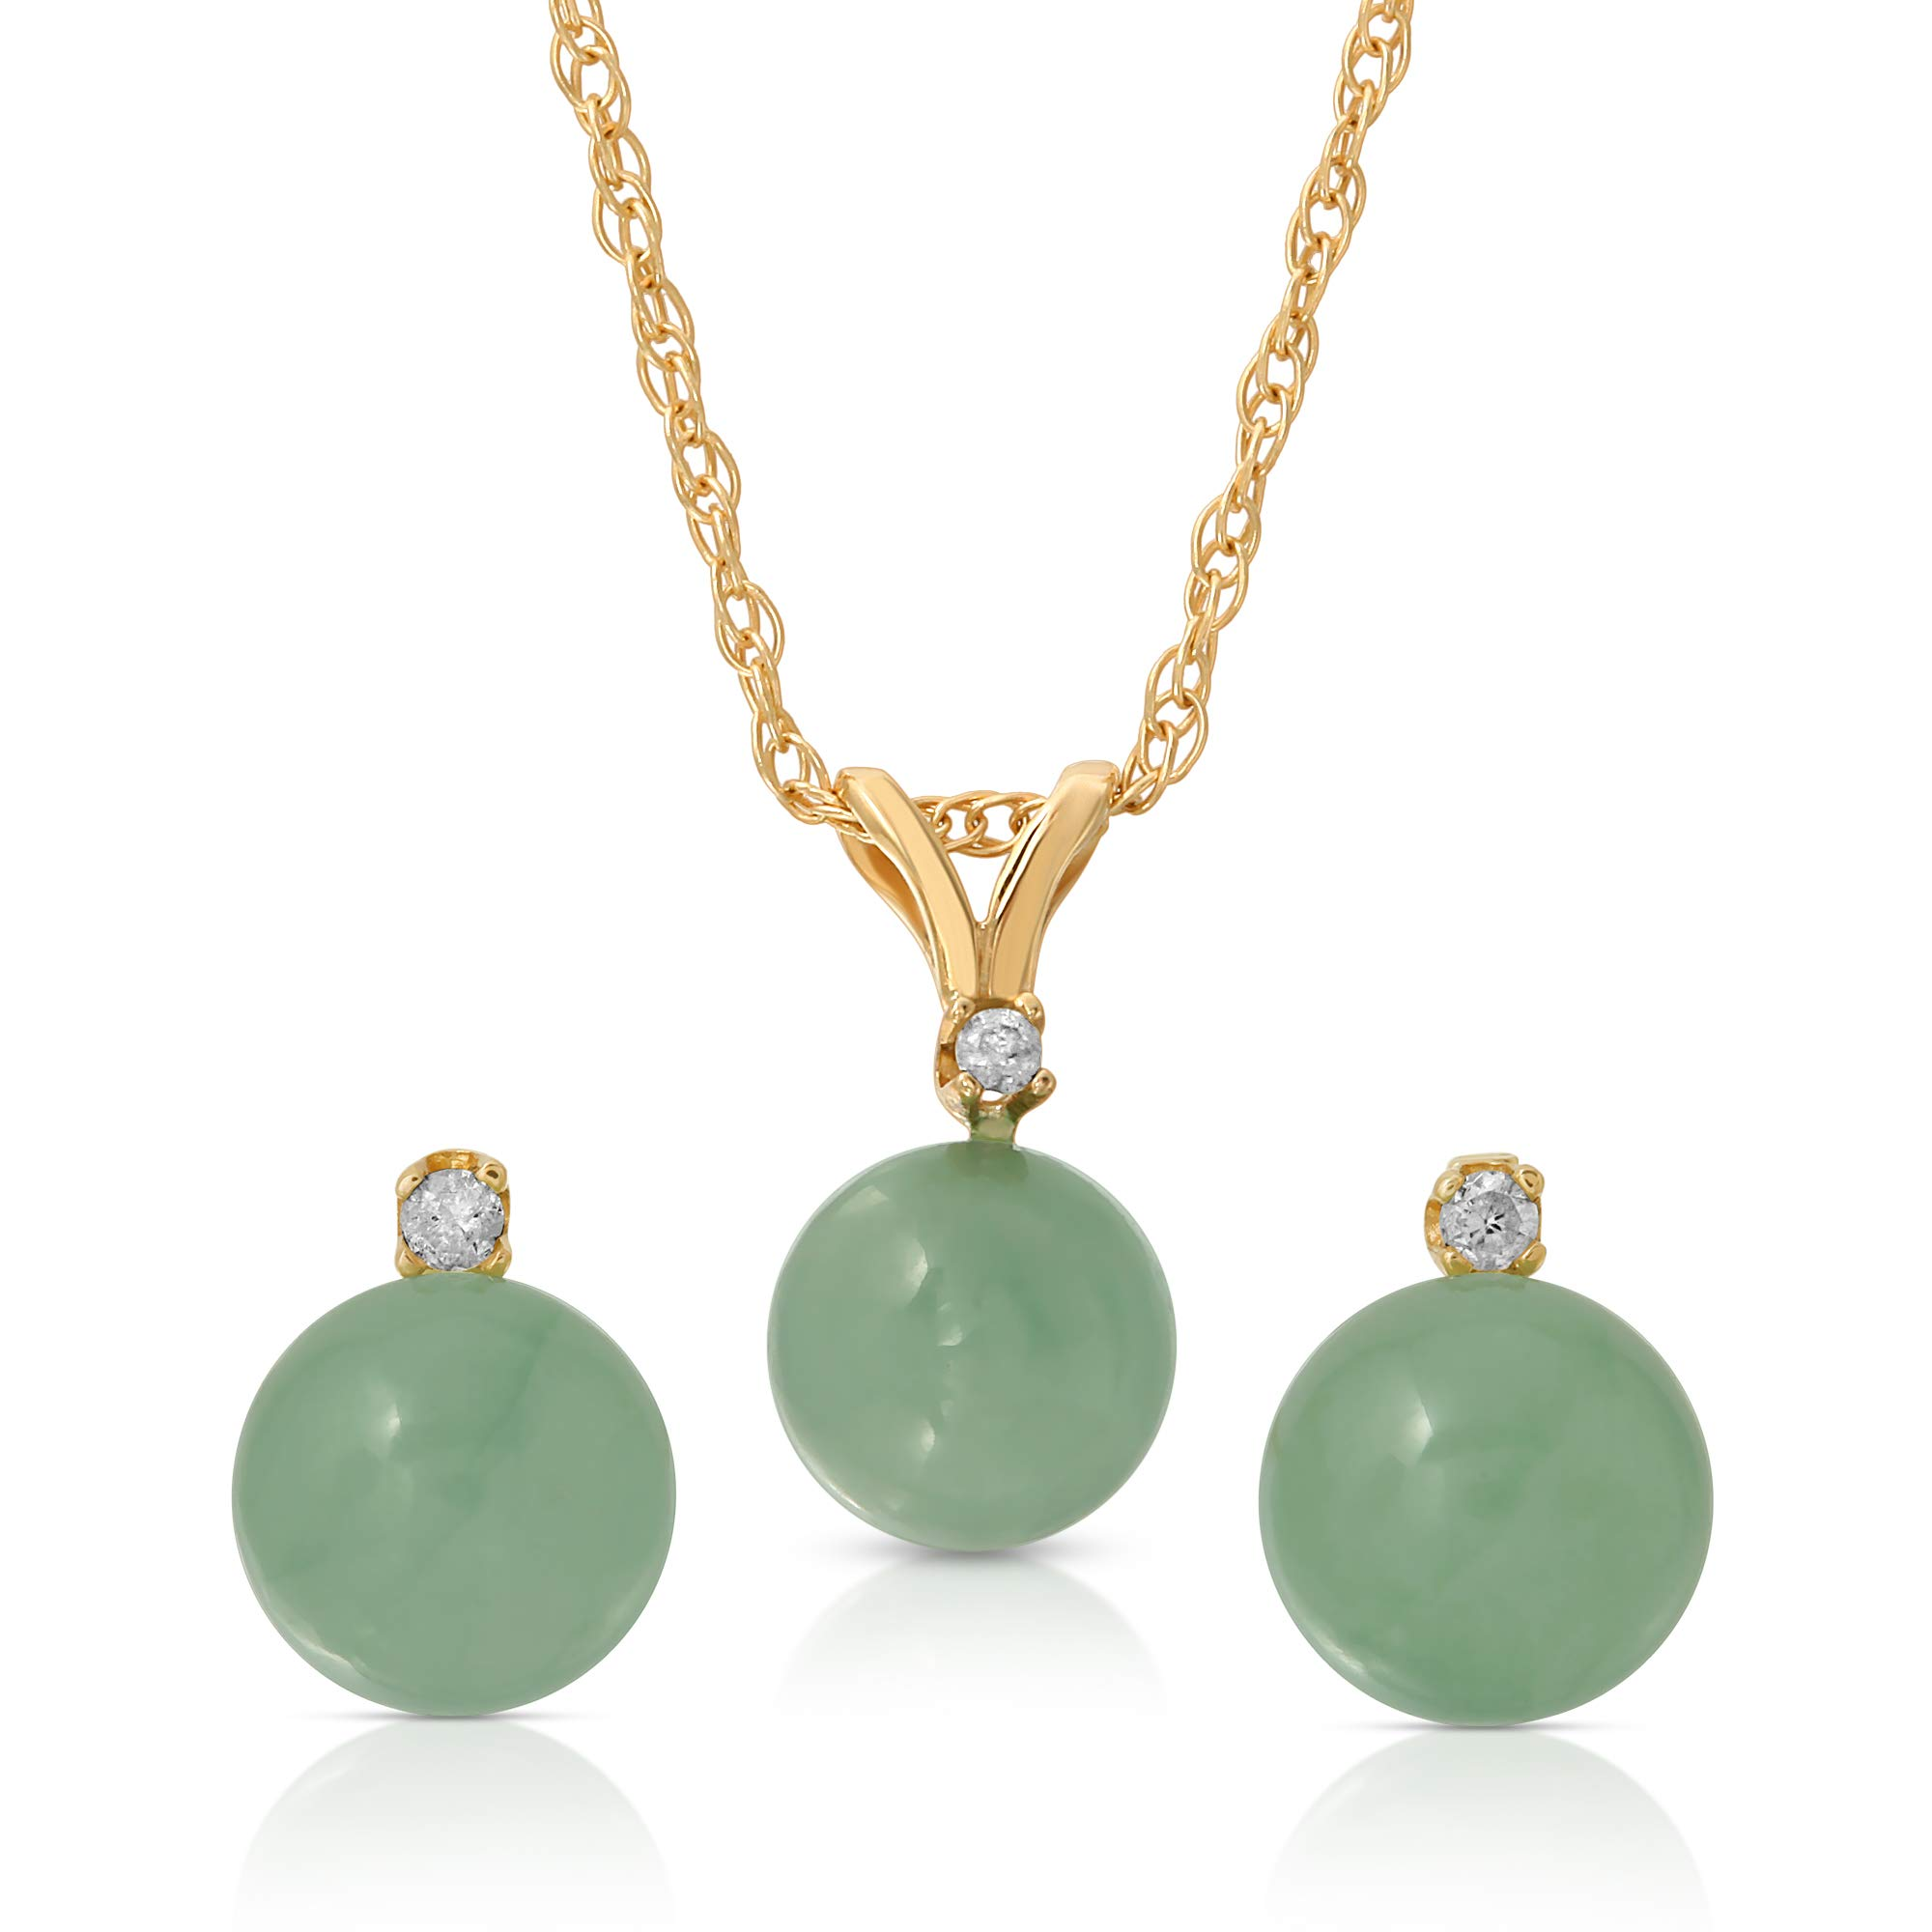 Regalia by Ulti Ramos 14K Gold Genuine Jade 2pcs Earring and Pendant Set with .03cts of White Diamonds 18'' (Yellow Gold)